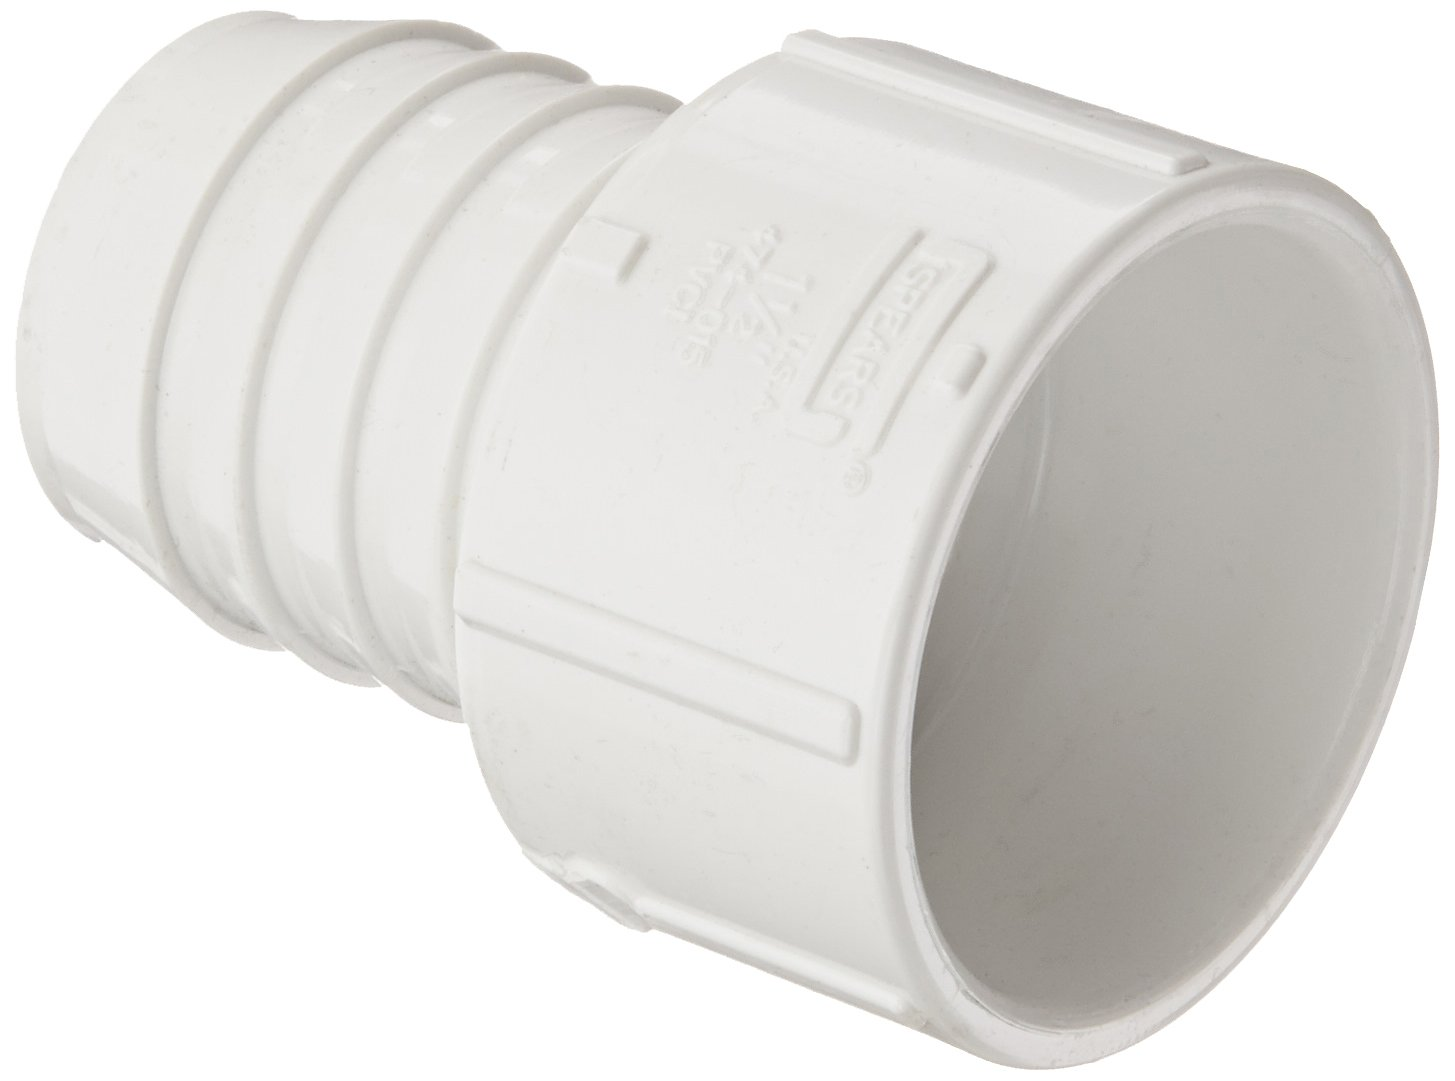 """Spears 474 Series PVC Pipe Fitting, Adapter, Schedule 40, White, 1-1/2""""Barbed x 1-1/2"""" Socket"""